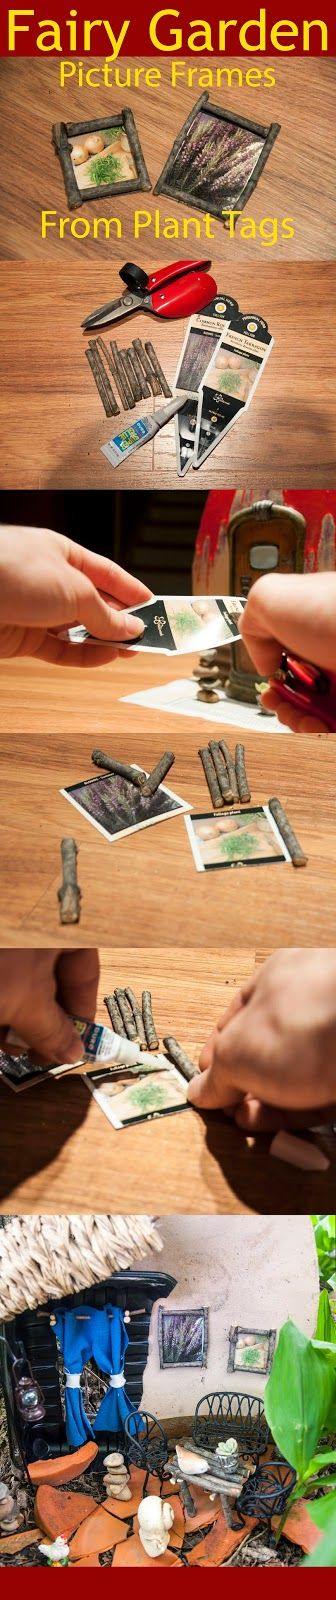 The Green Gardener: Fairy Garden DIY: Picture Frames from Plant Tags